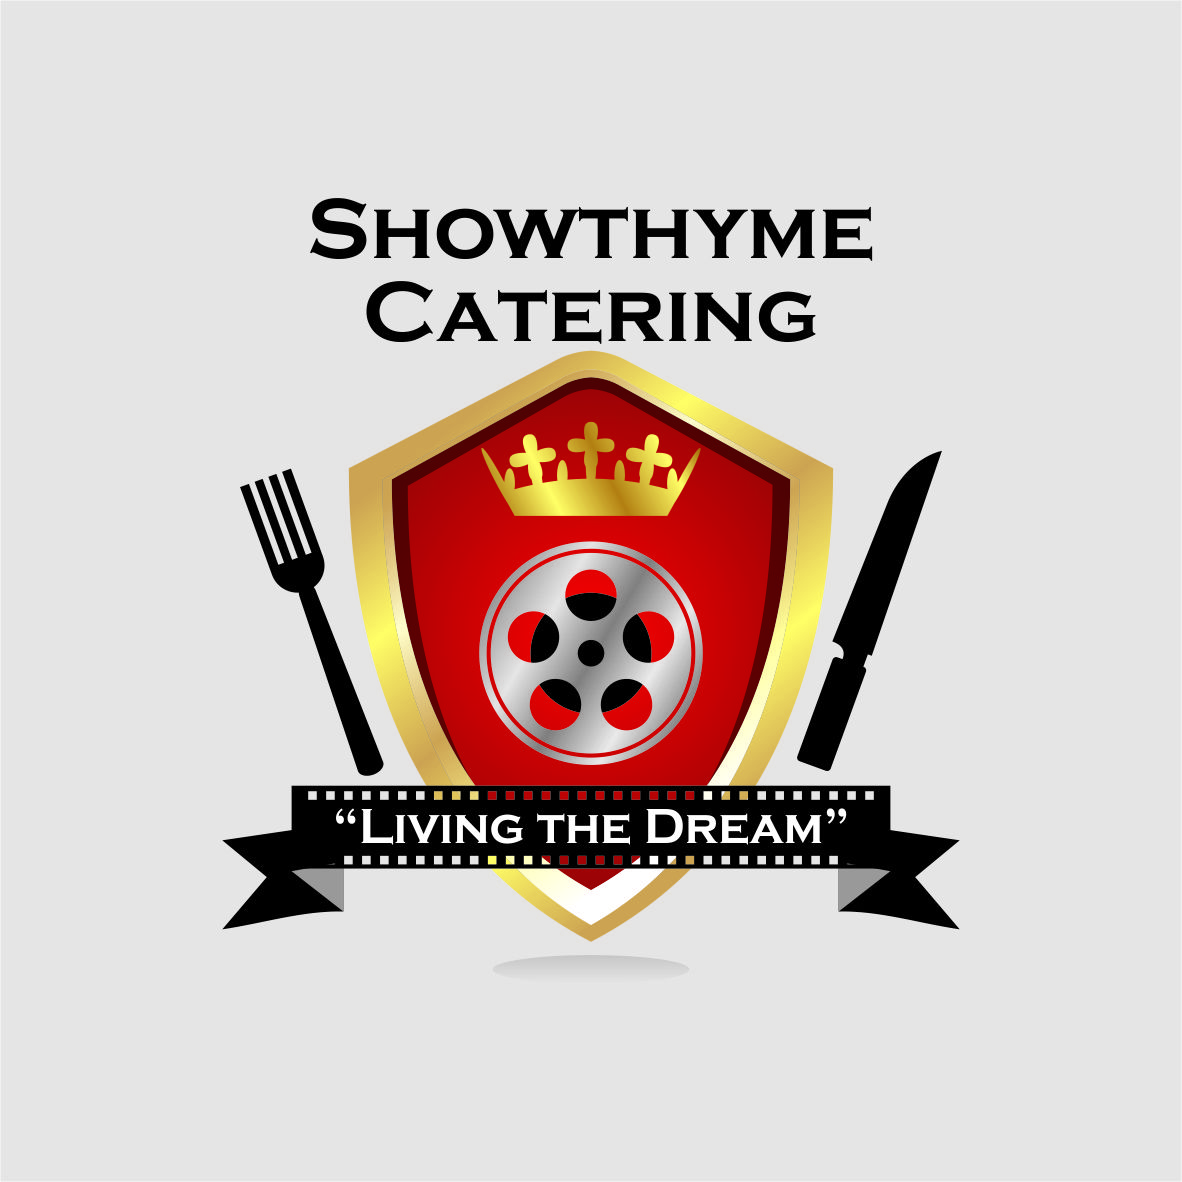 Logo Design by arteo_design - Entry No. 43 in the Logo Design Contest Showthyme Catering Logo Design.